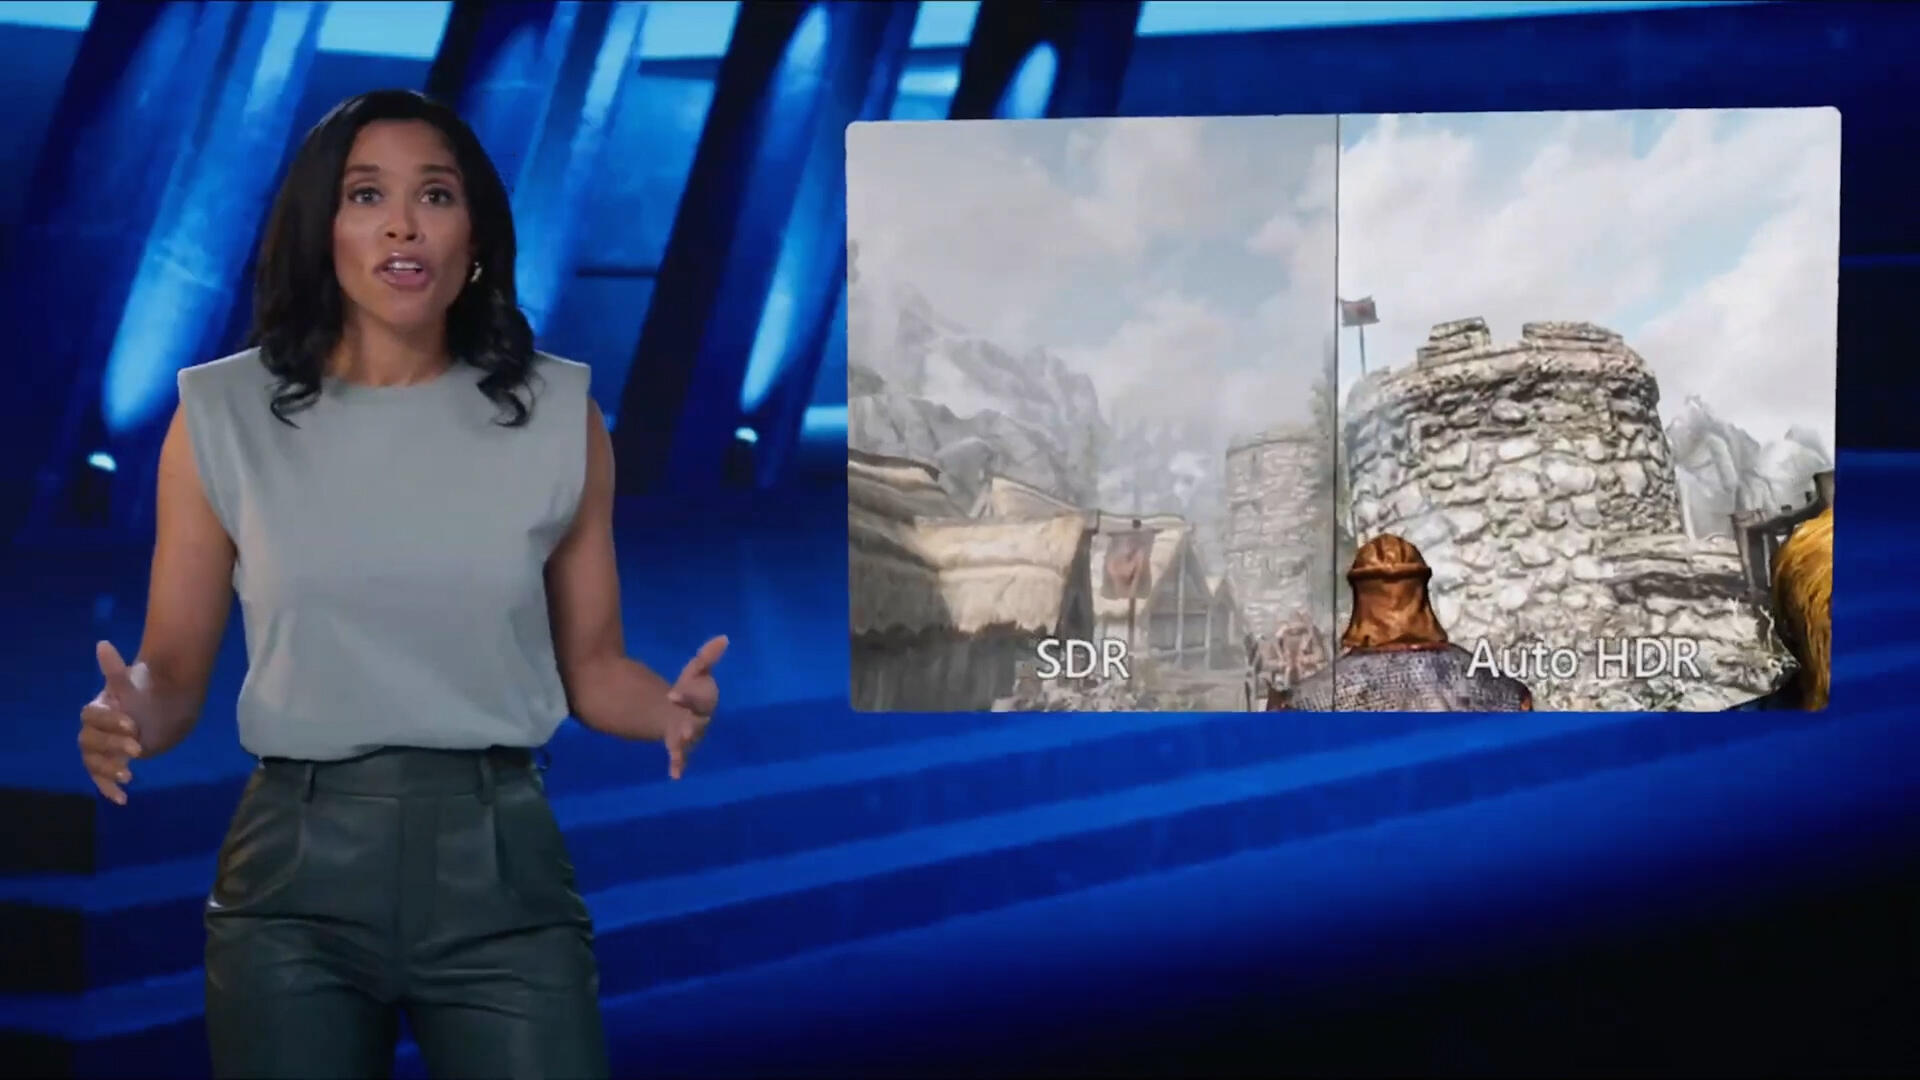 Video: Microsoft debuts Windows 11 with HDR gaming